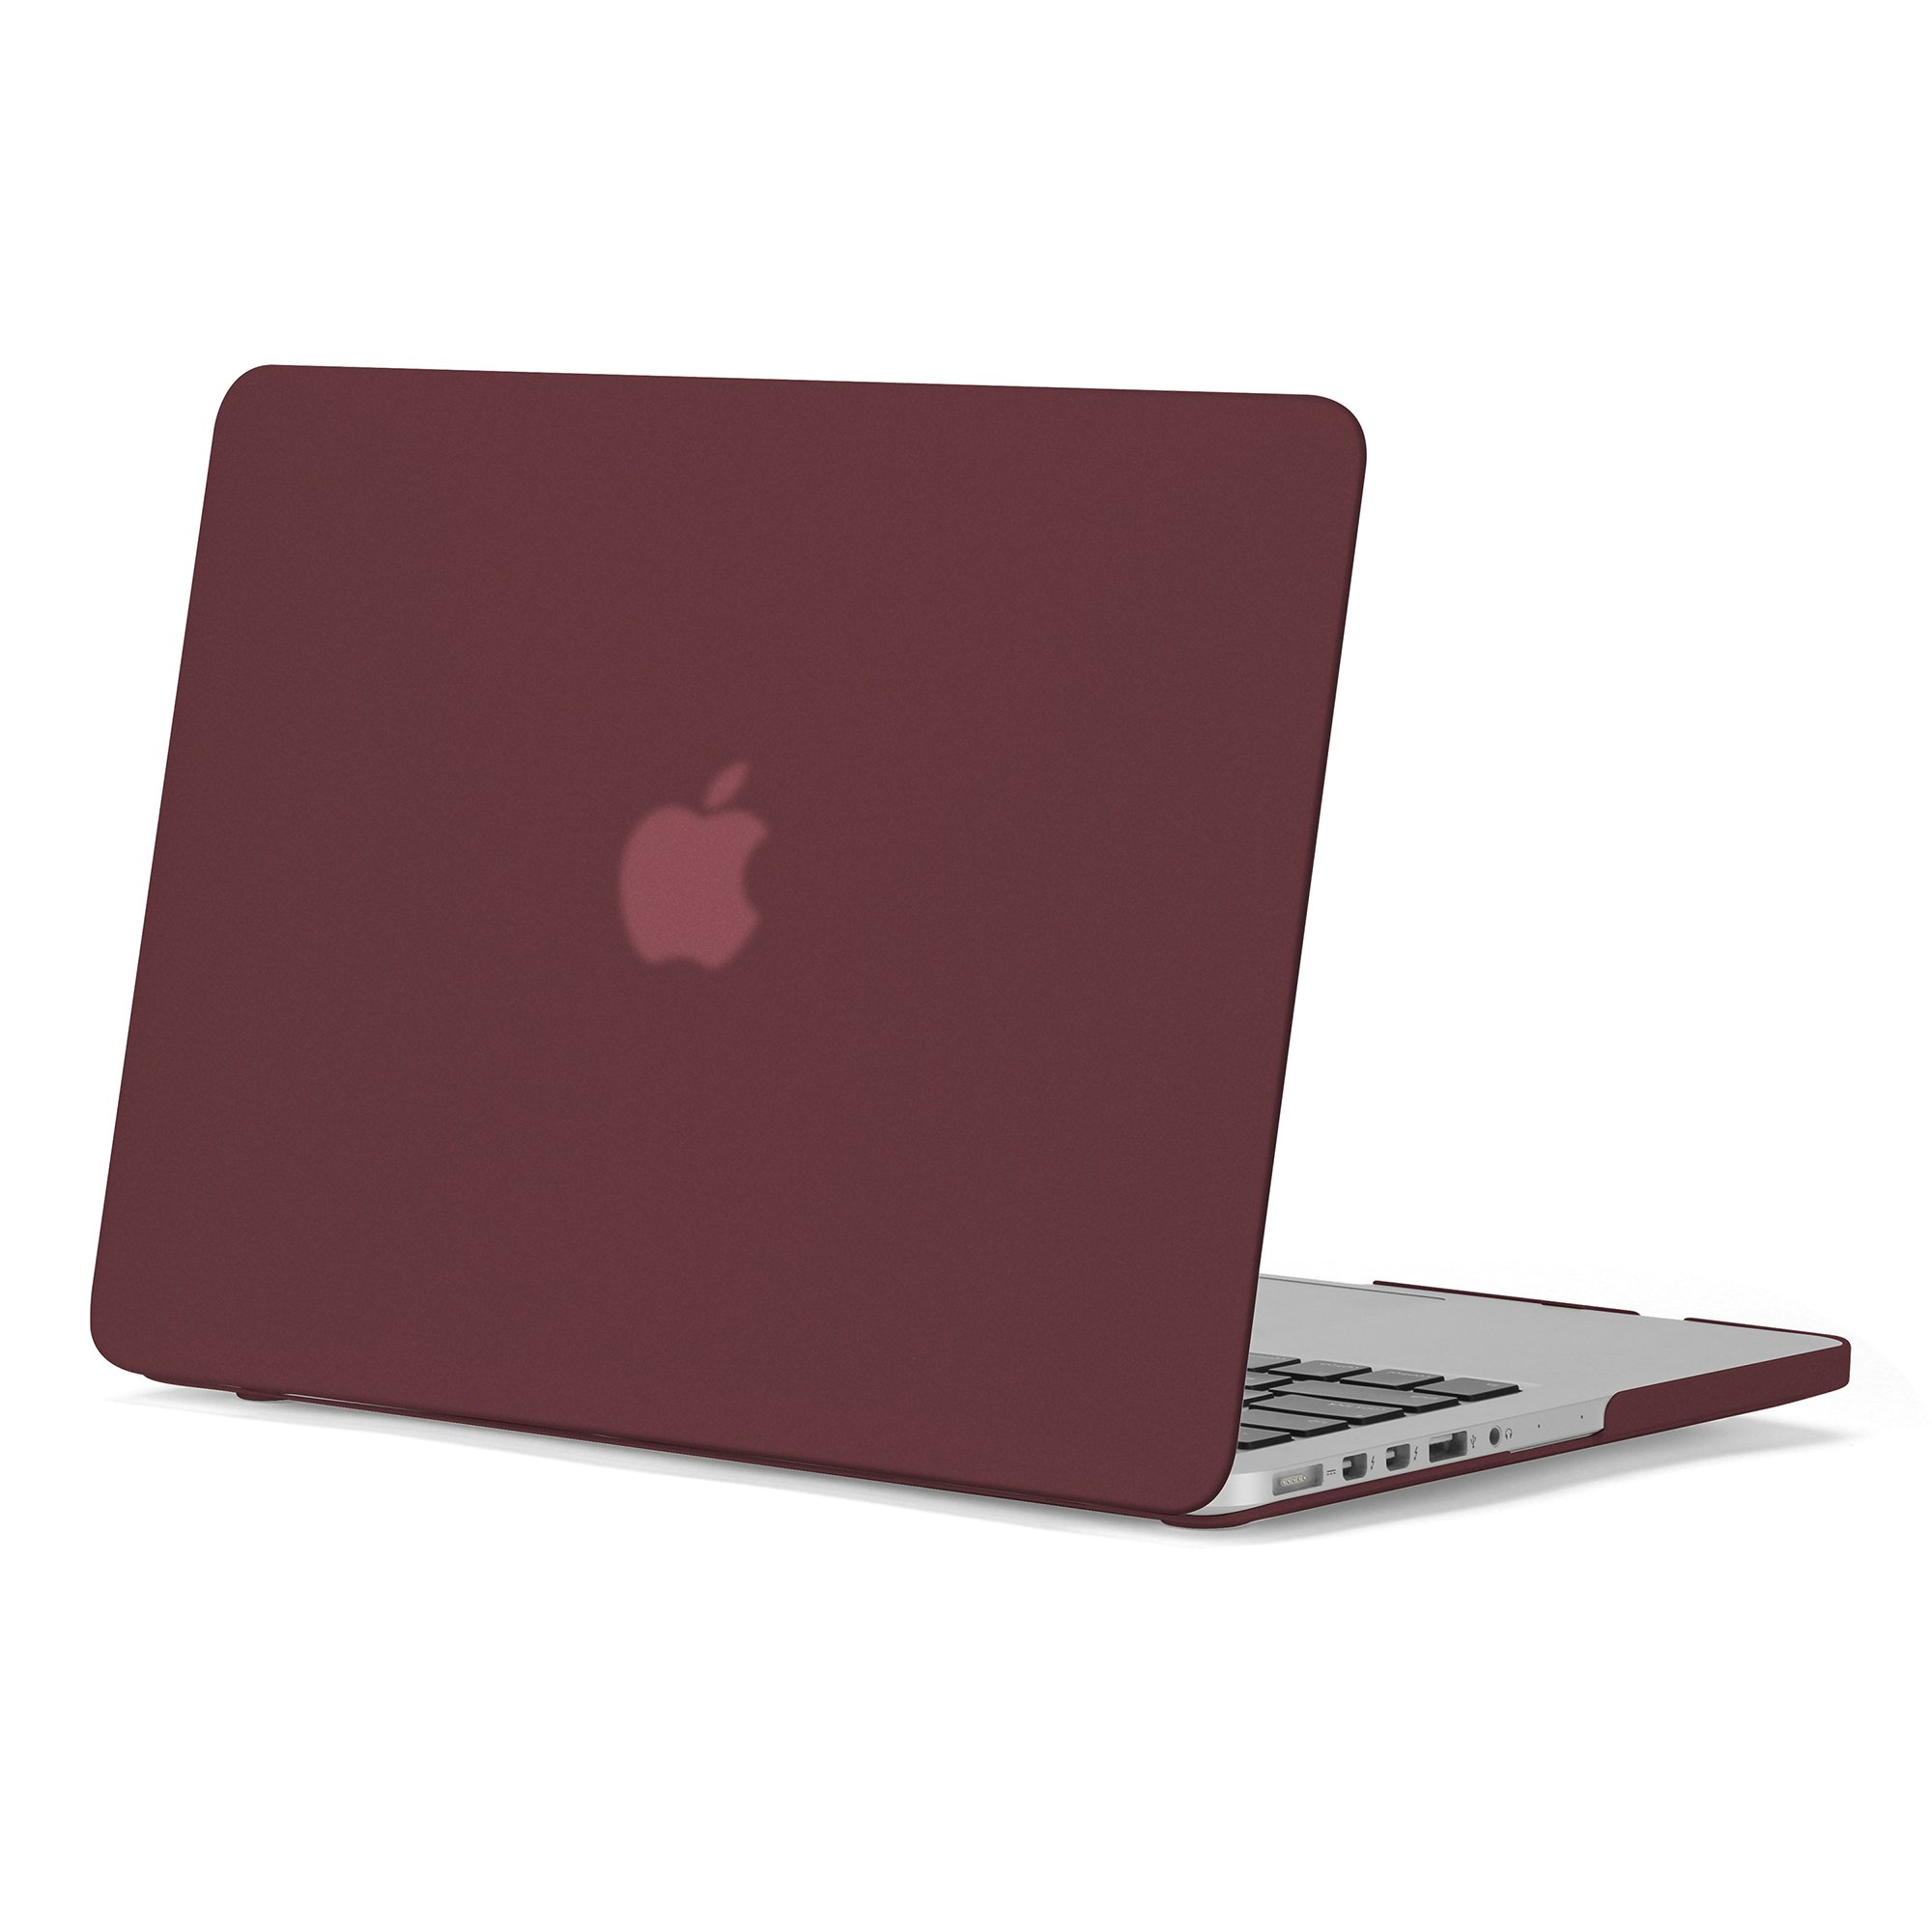 GMYLE 3 in 1 Bundle Burgundy Red Set Matte Plastic Hard Case for OLD MacBook Retina Display Pro 13 Inch NO CD-ROM (A1502/A1425,Version 2012-15) & Water Repellent Laptop Sleeve with Keyboard Skin by GMYLE (Image #5)